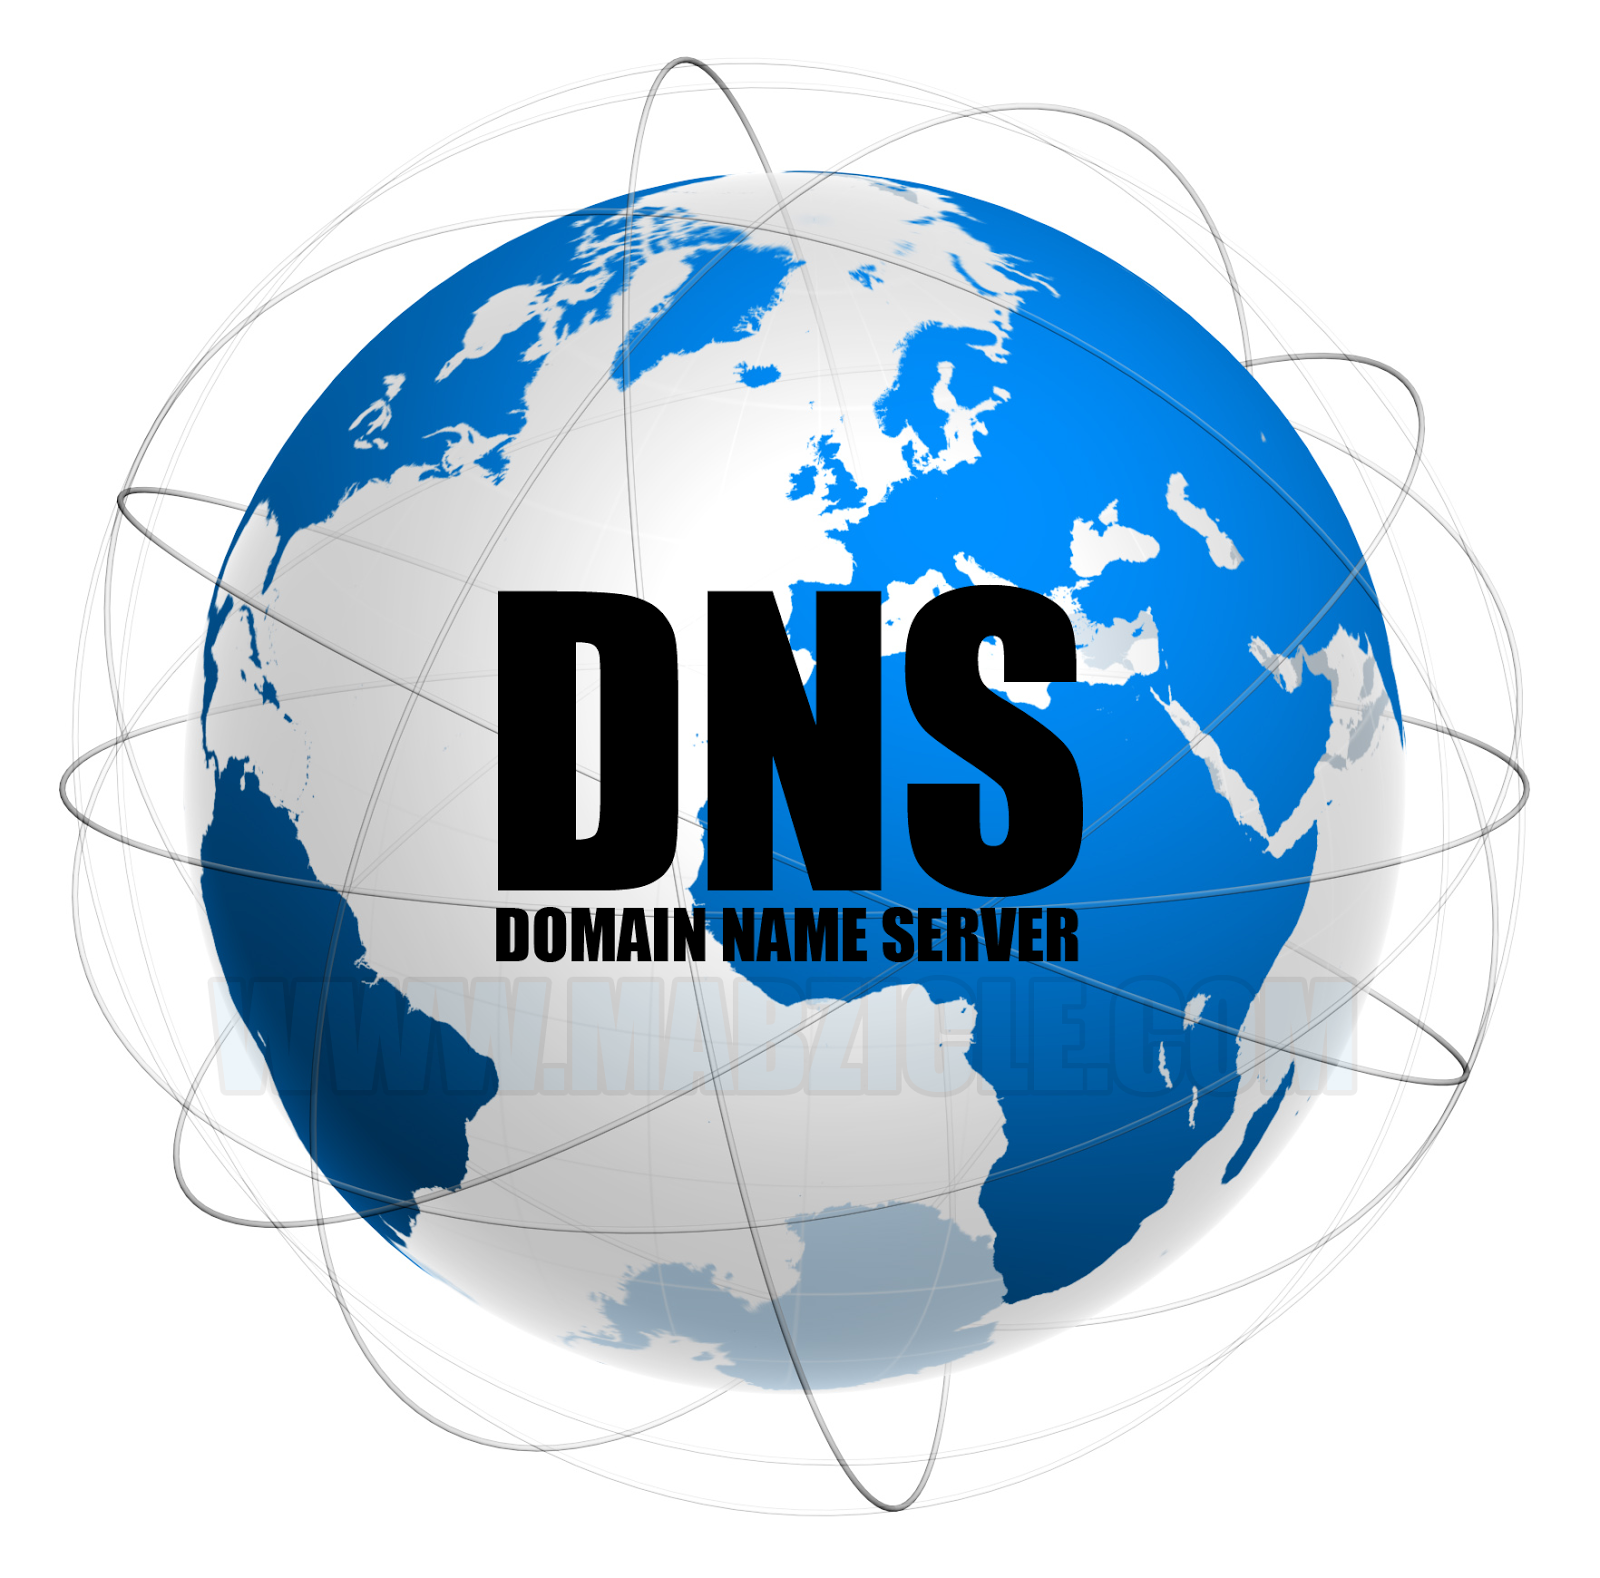 how to change dns in ipad